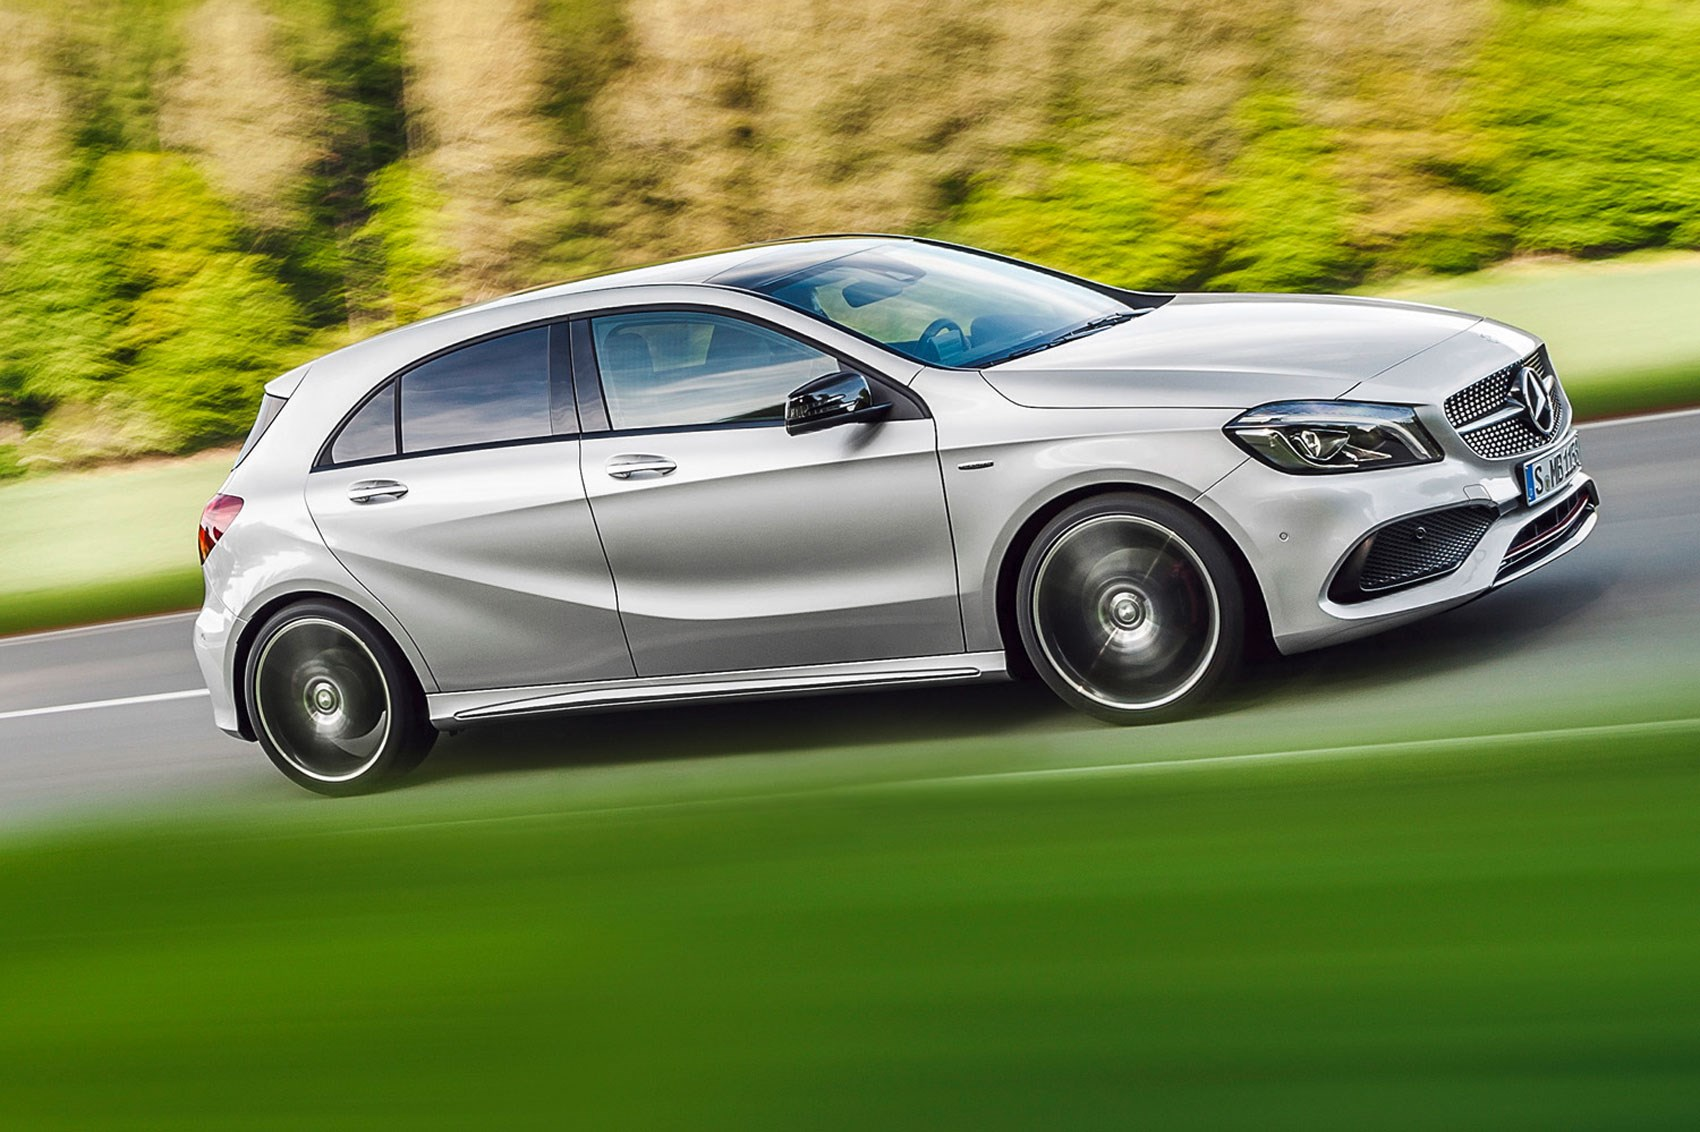 Mclaren Kit Car >> Mercedes-Benz A250 AMG (2015) review by CAR Magazine